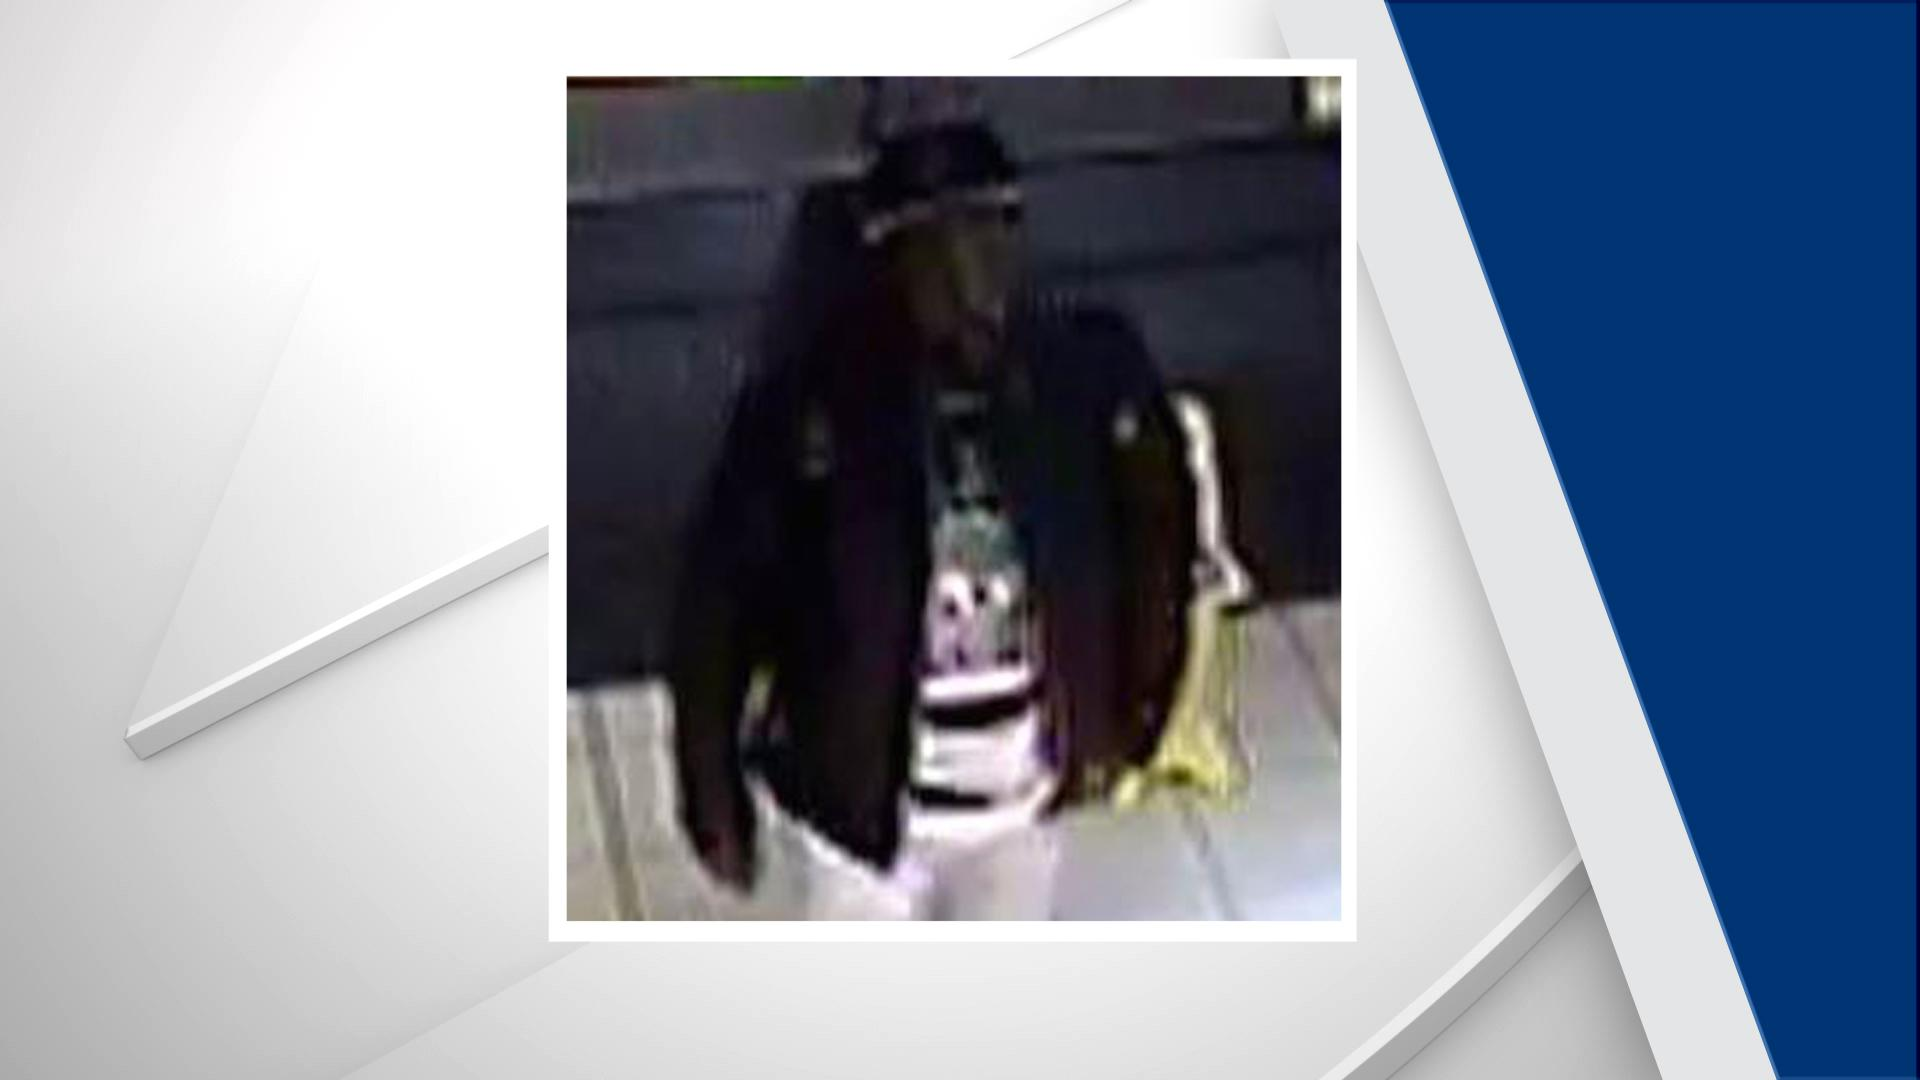 Police seek help identifying suspect in Northgate Mall shooting